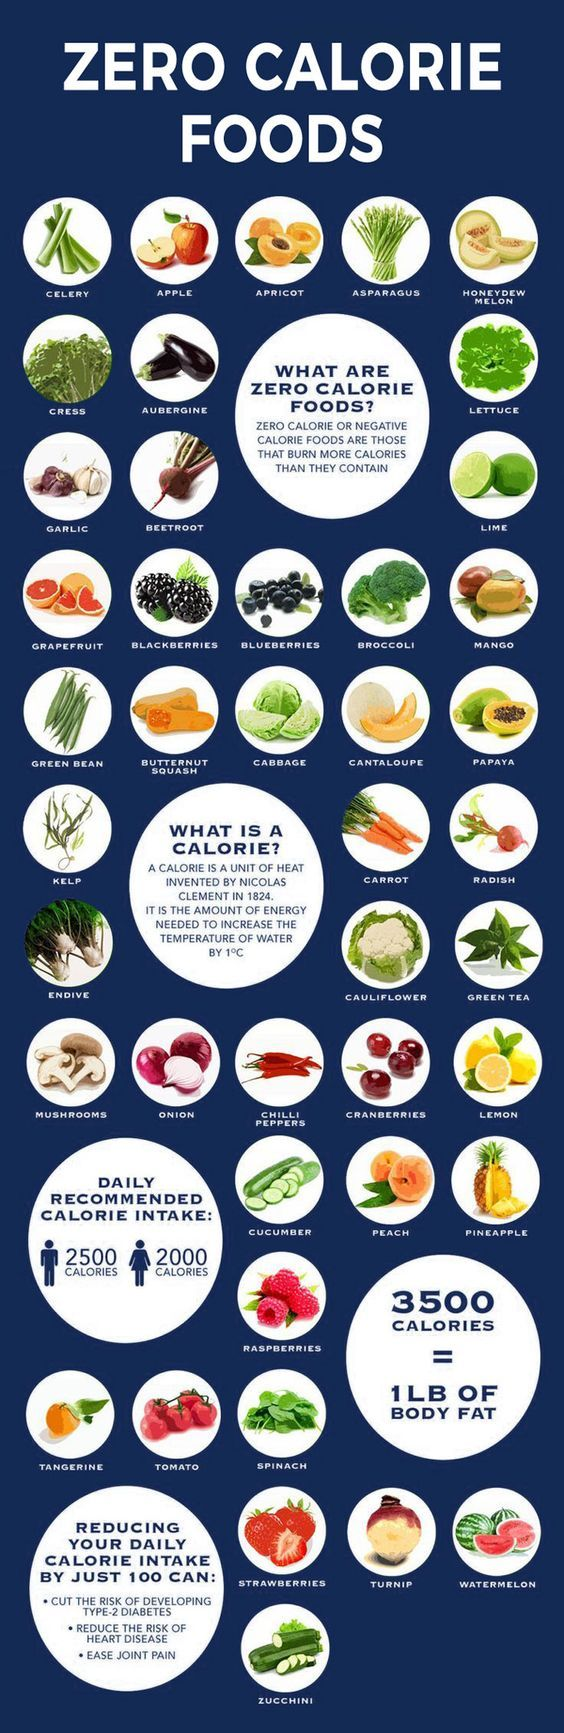 This infographic is AMAZING. If you're wanting to feel full without packing on the calories, try eating some of the stuff on this list!